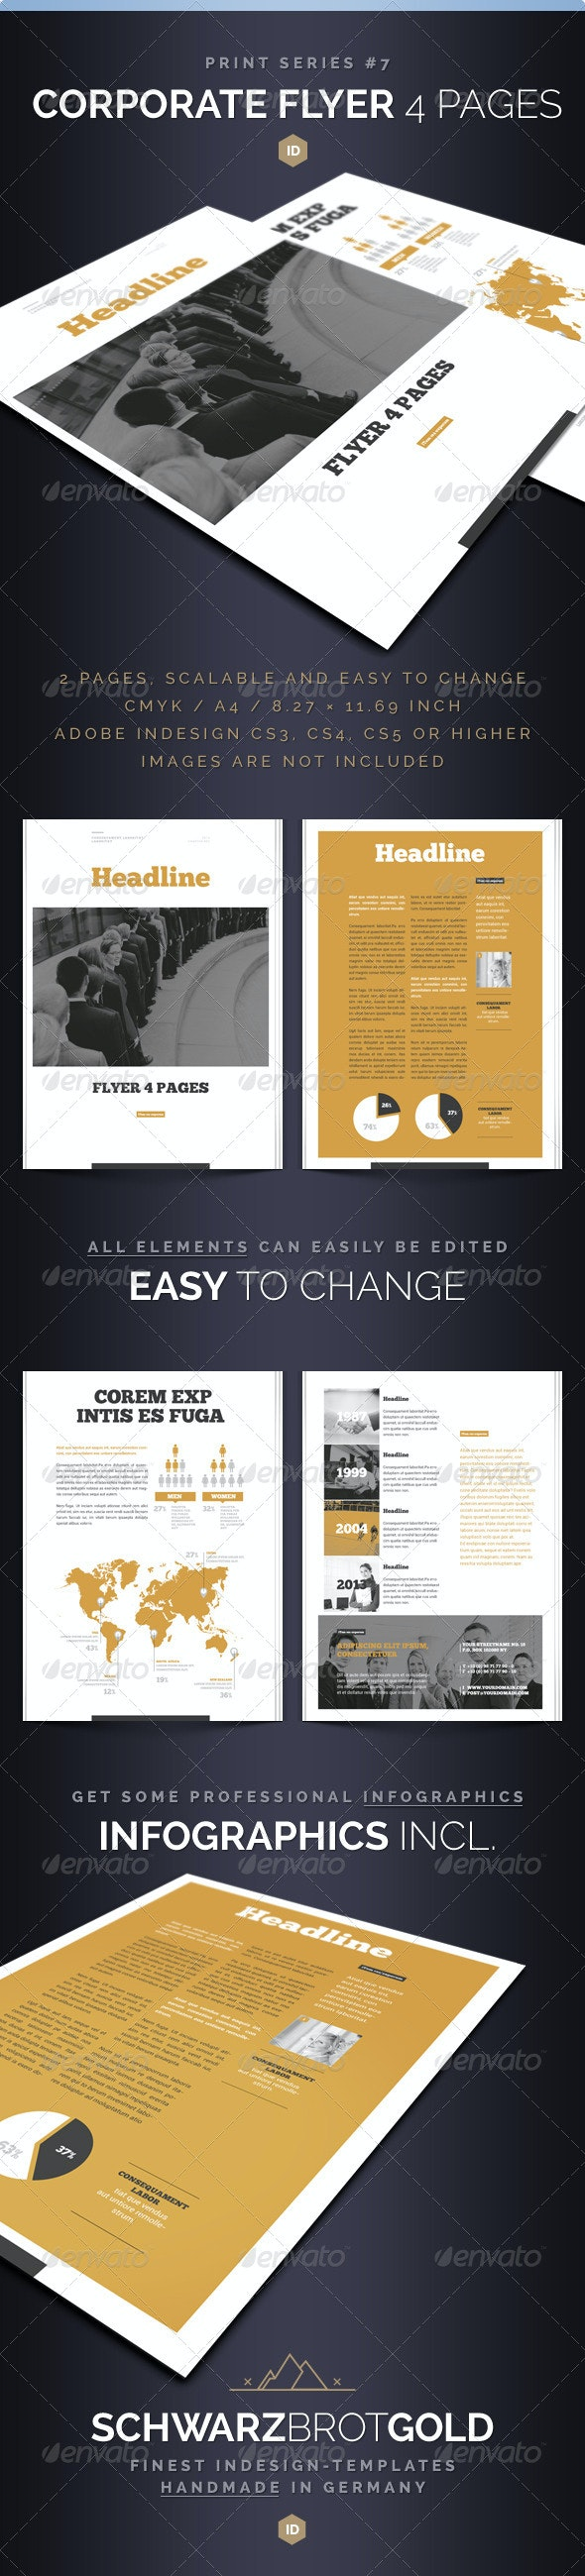 Corporate Flyer 4 Pages Series 7 - Corporate Flyers